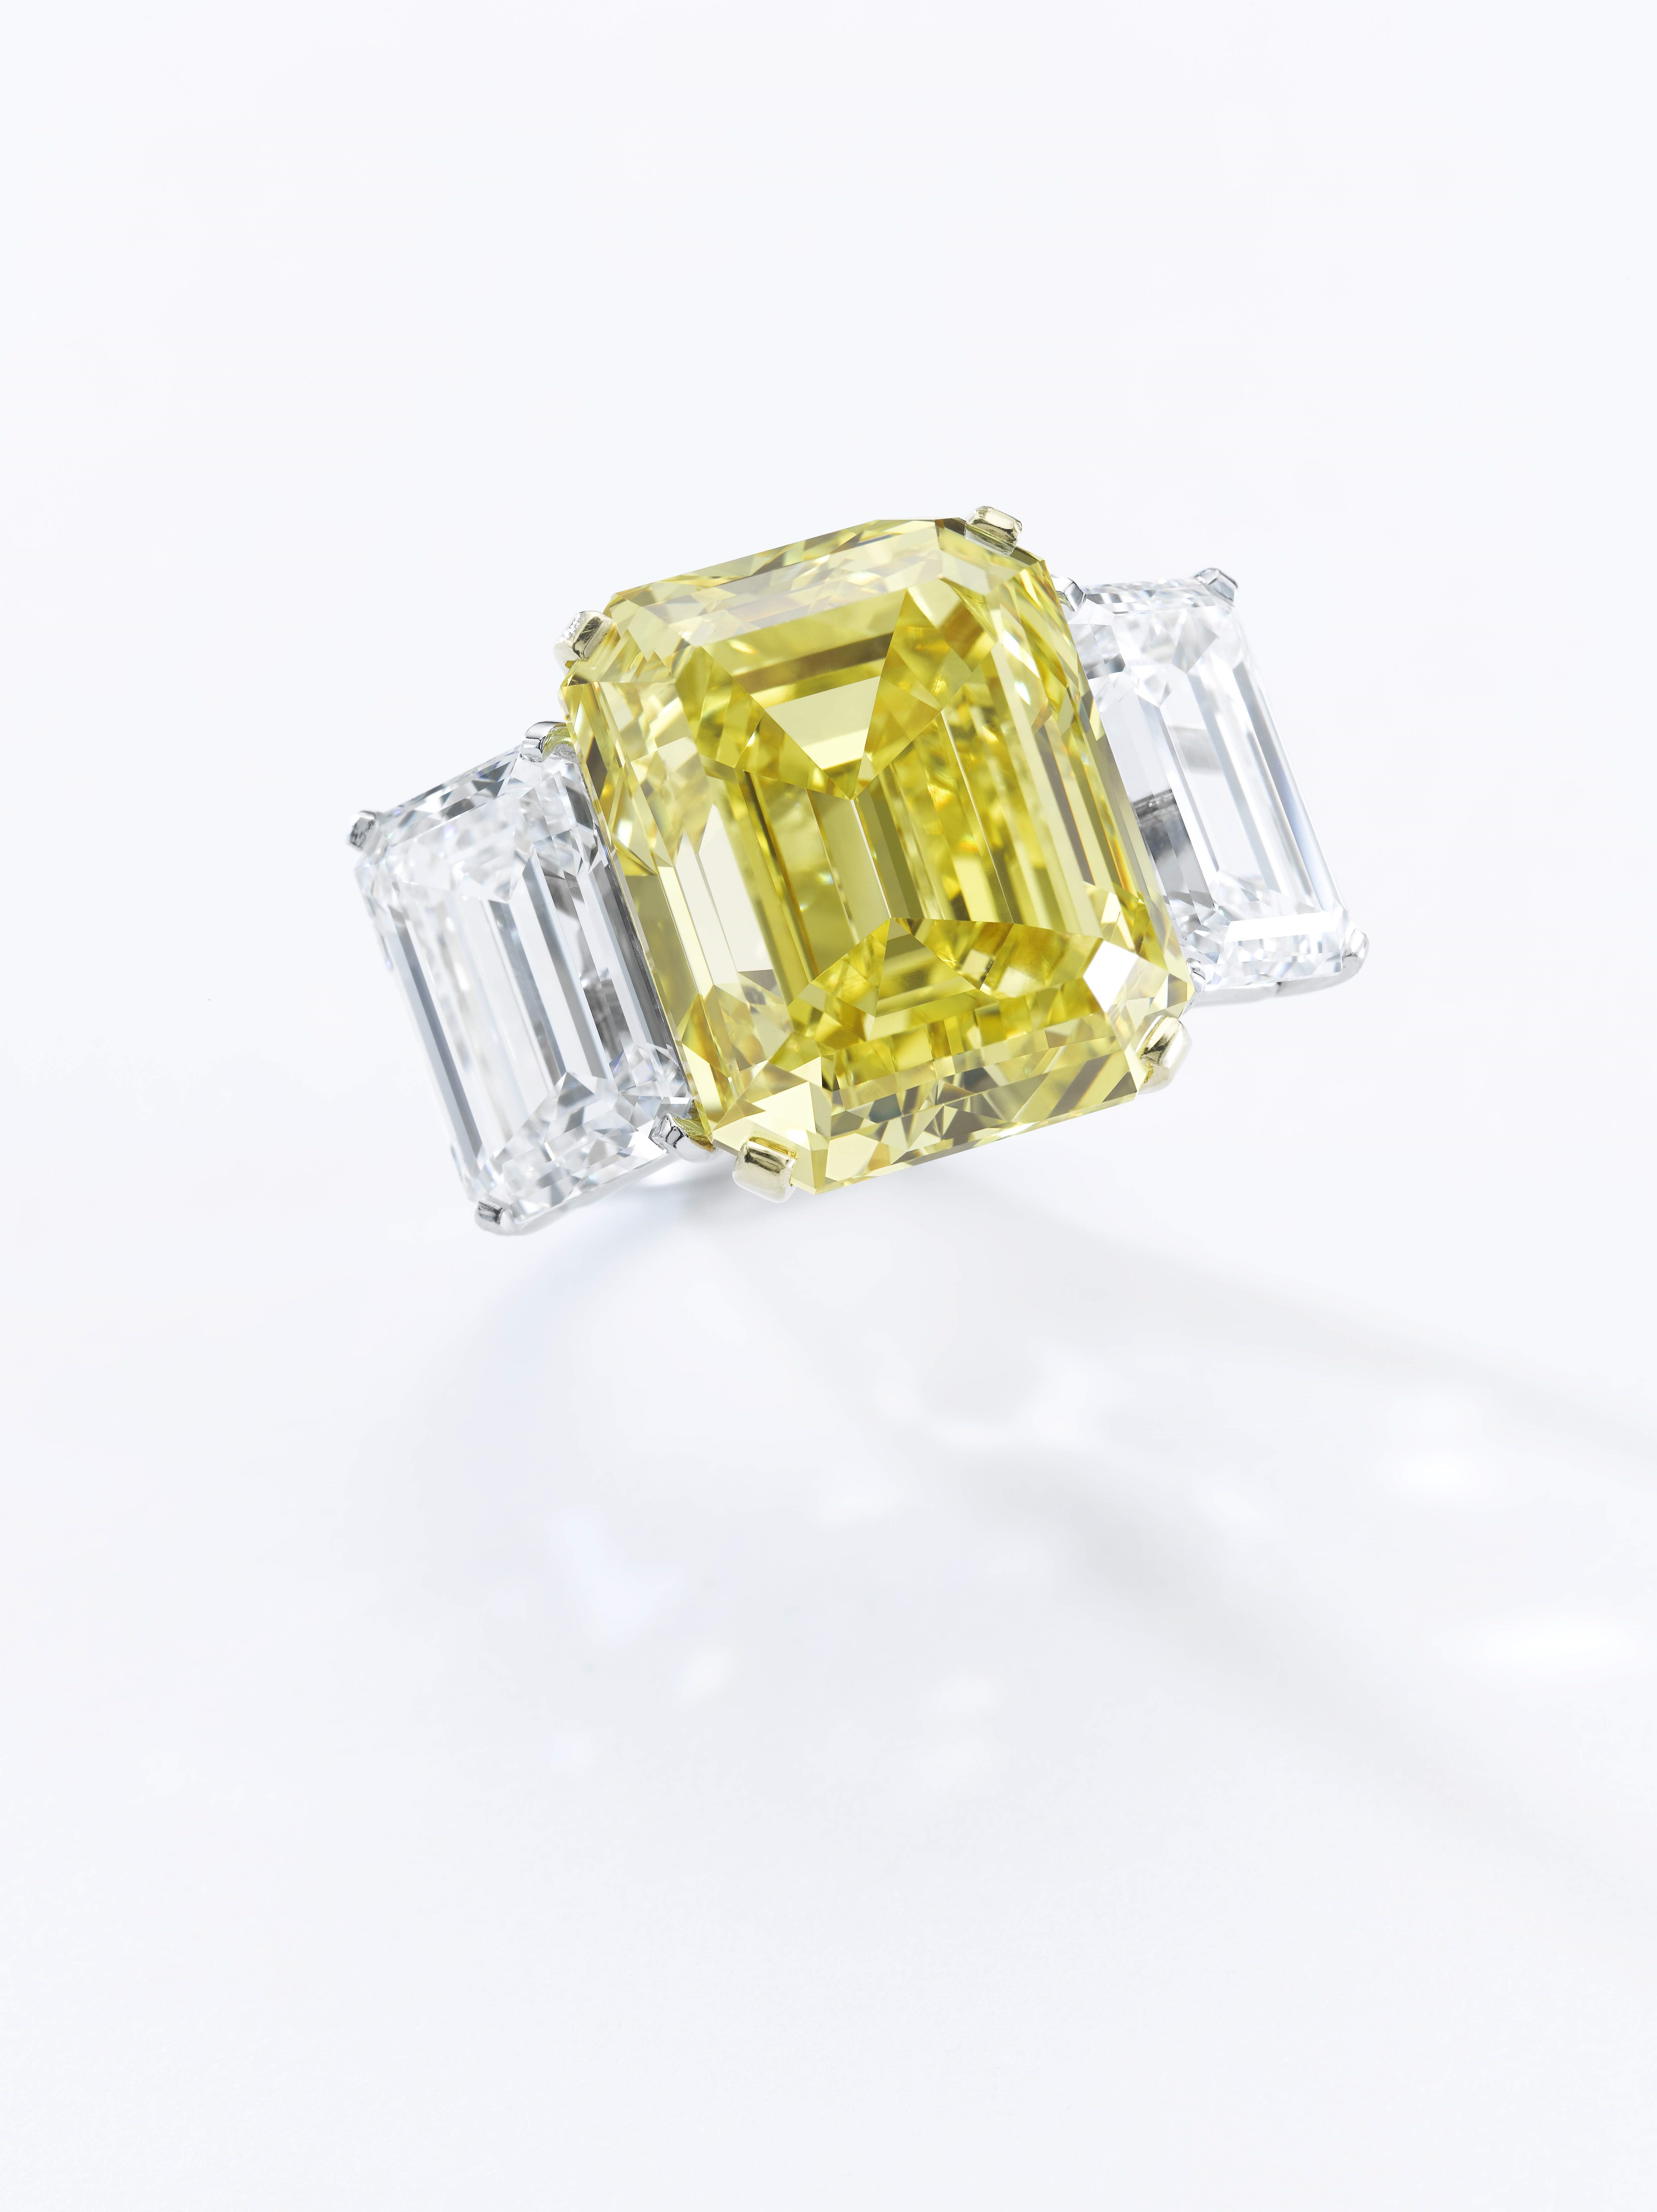 """A Fancy Vivid Yellow diamond ring: an extraordinary yellow diamond ring weighing 22.43 carats. The stone has been graded """"Fancy Vivid Yellow"""" by the GIA, with VS2 Clarity. Estimate $1,300,000-1,600,000."""